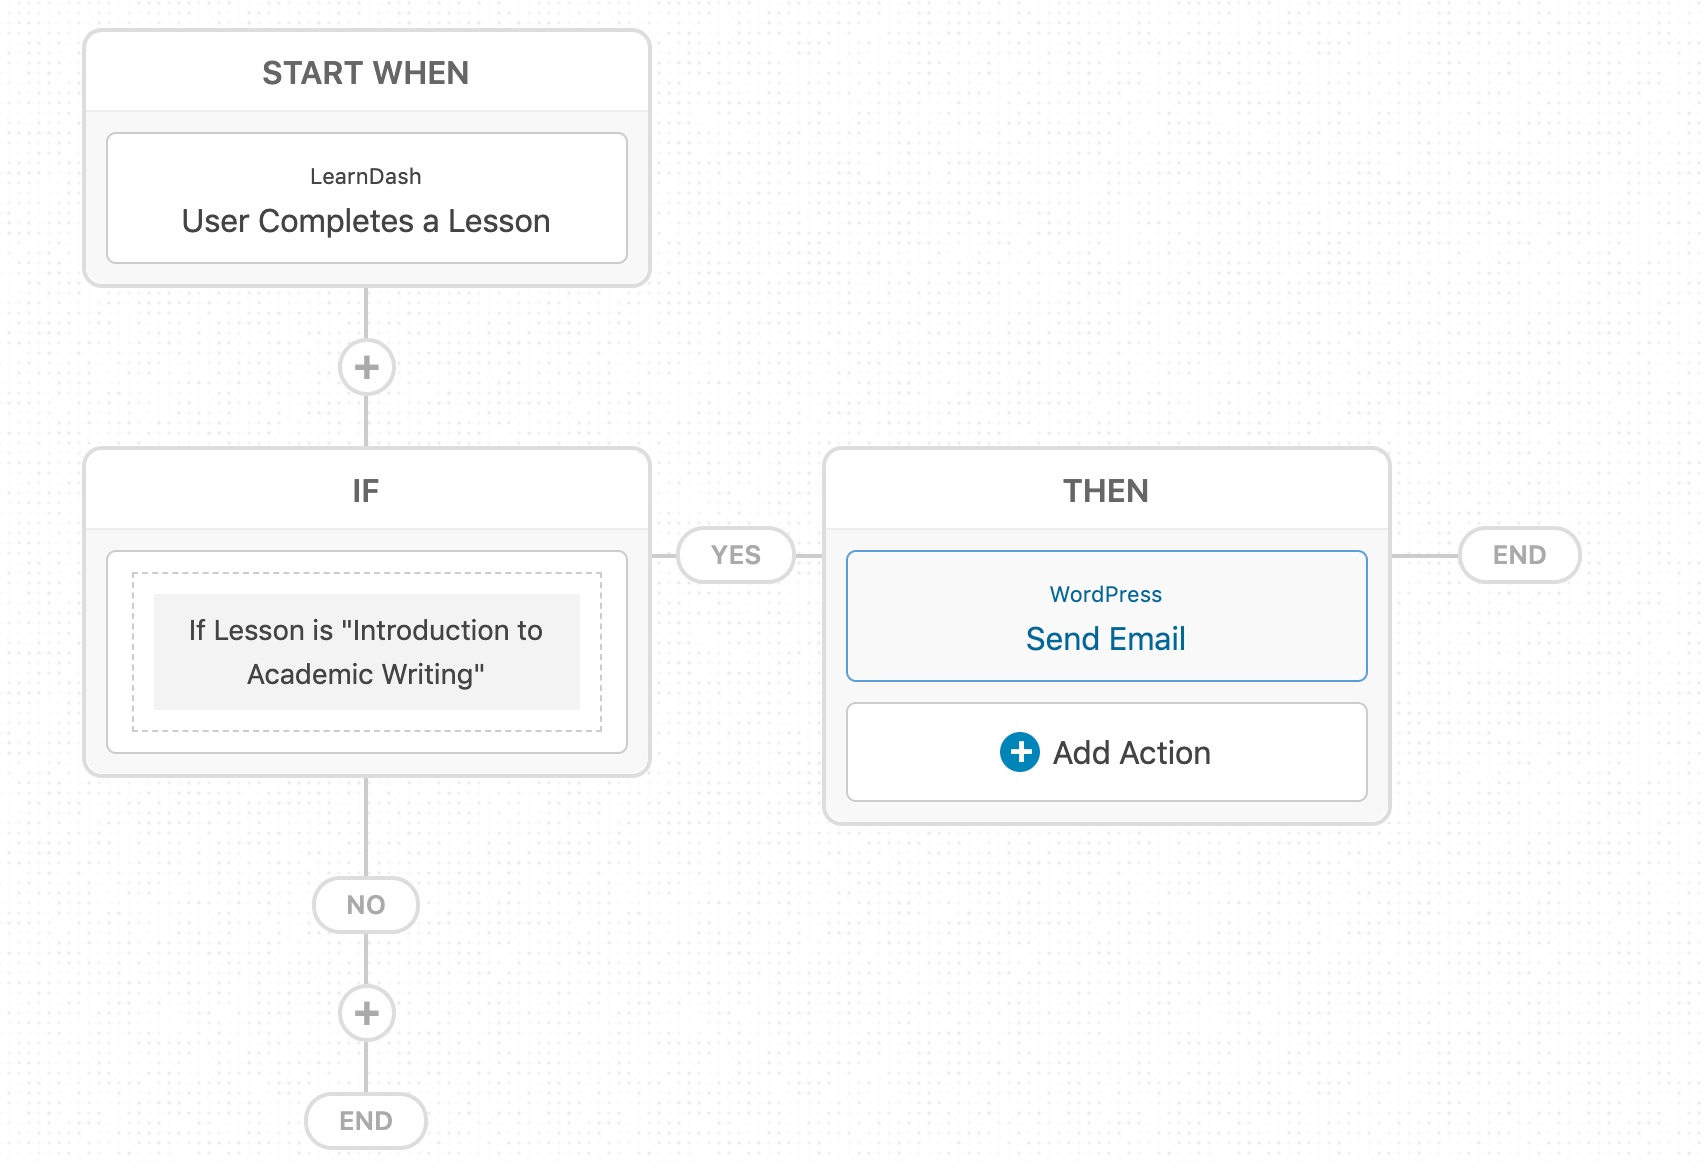 learndash-automation-user-completes-lesson